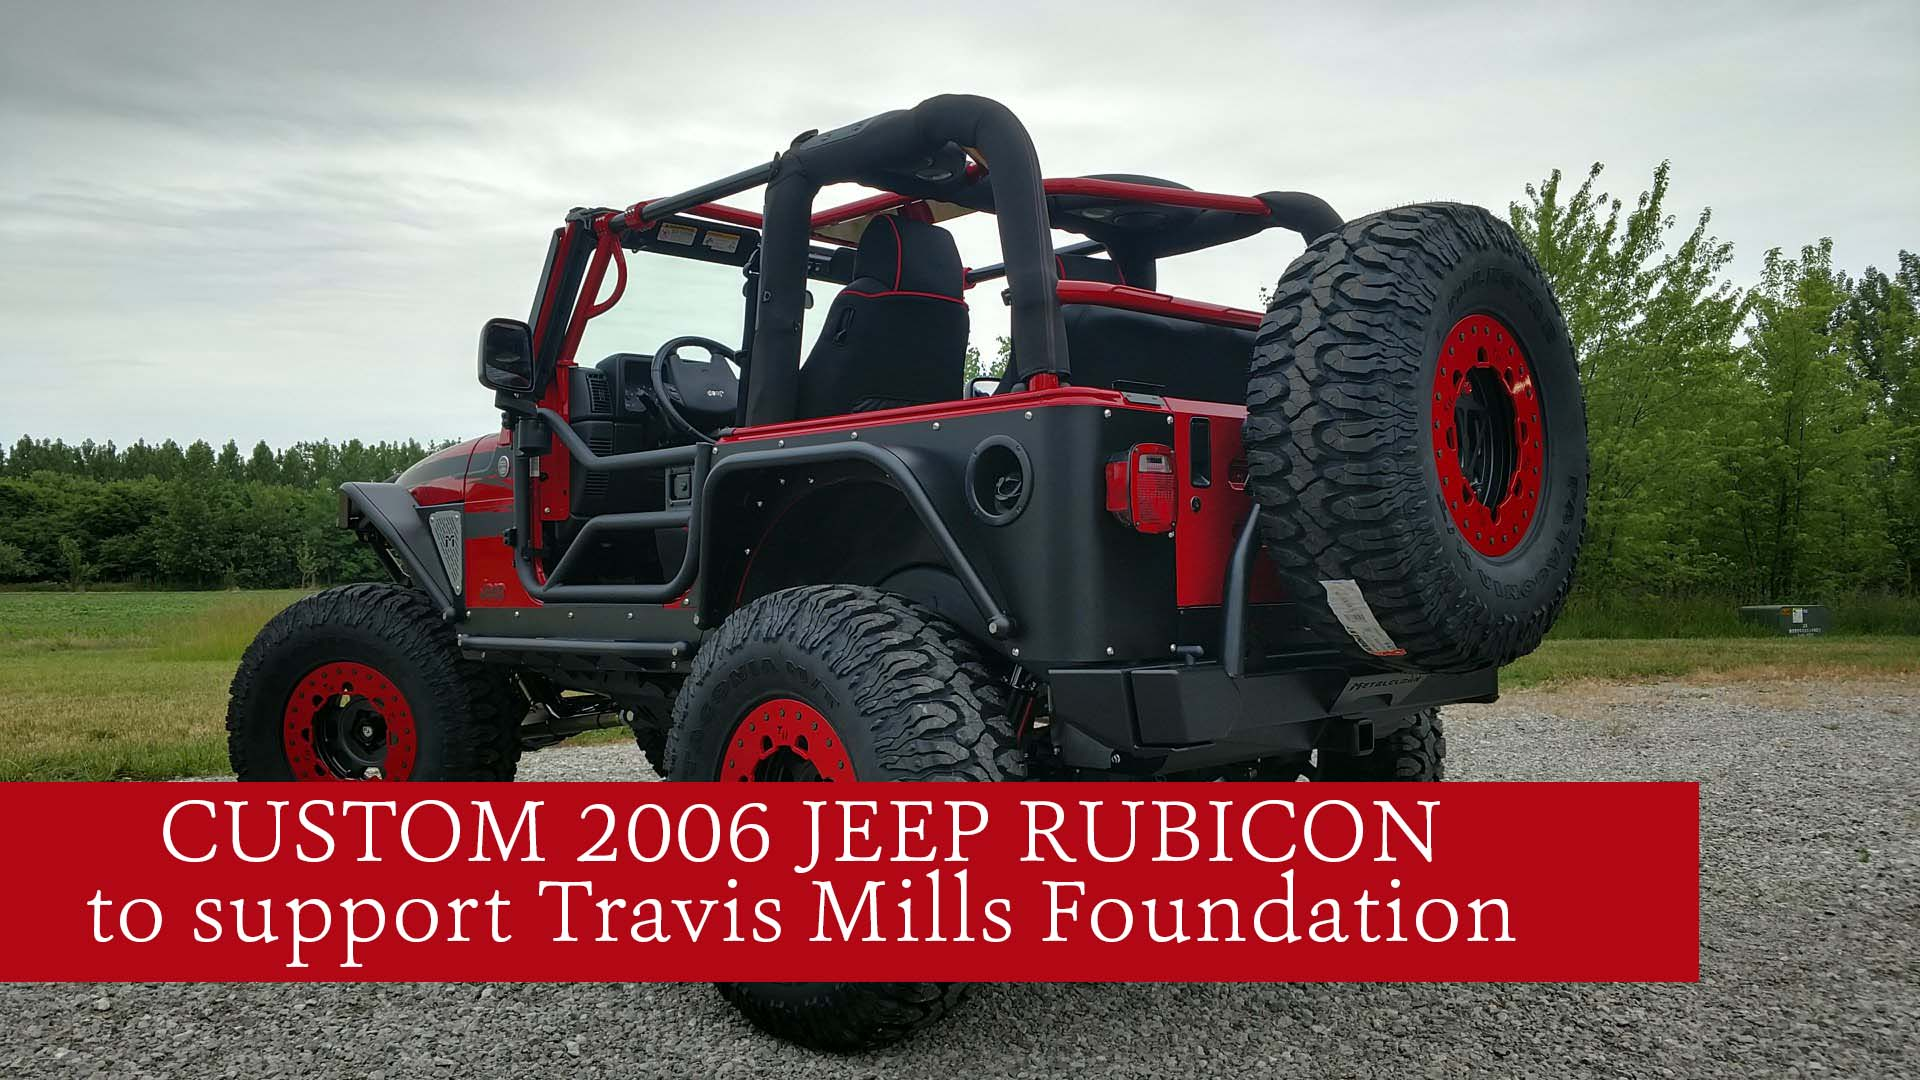 The Jeep Is Outfitted With Great Accessories And All Parts Are BRAND NEW